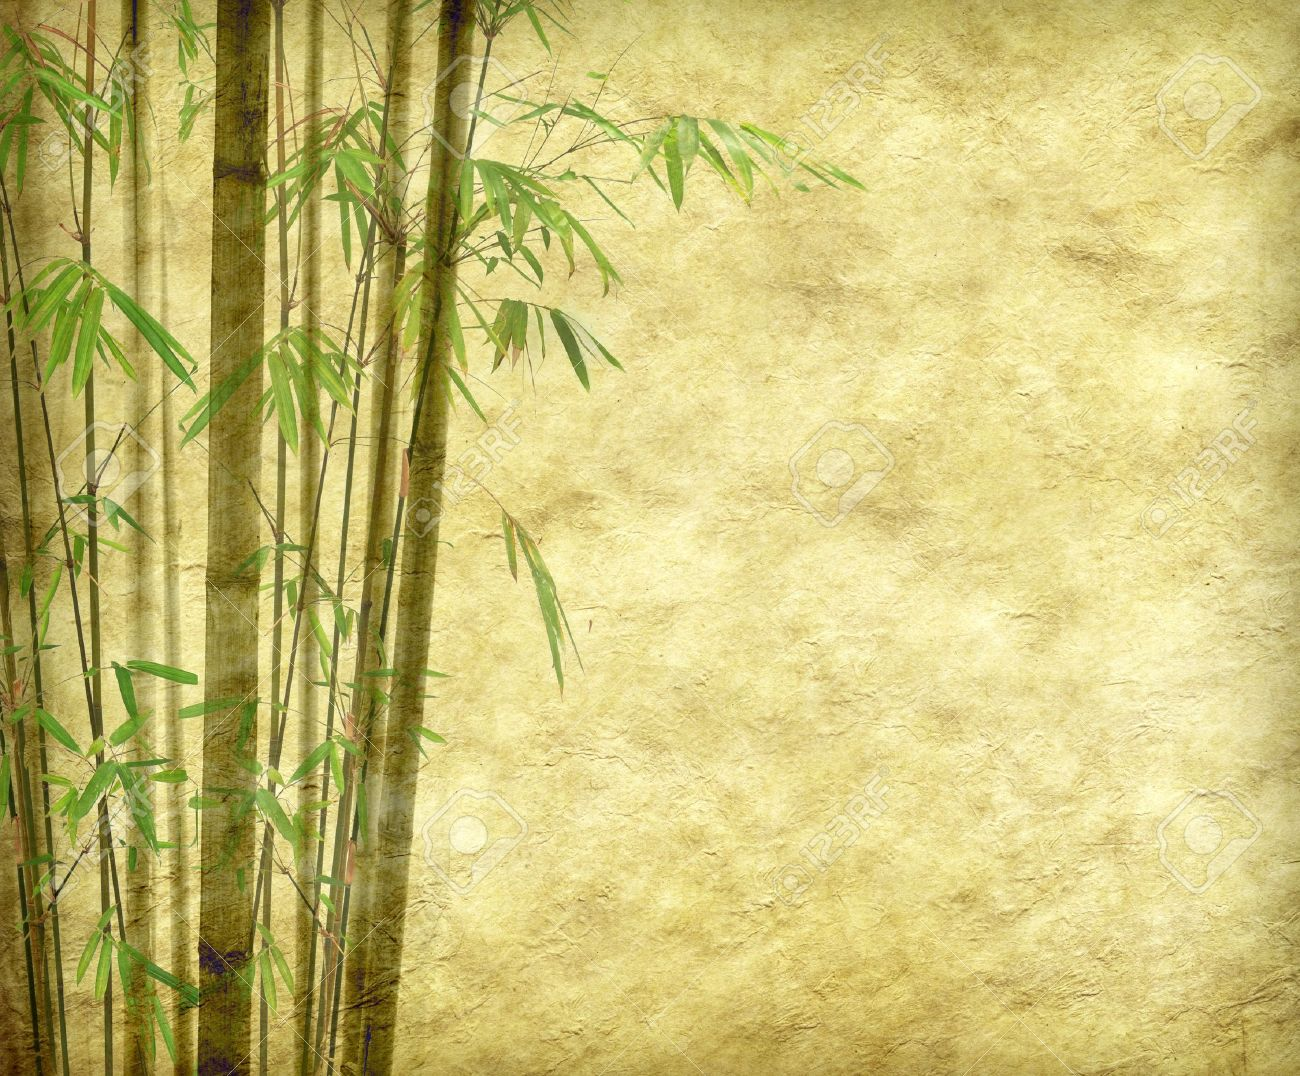 Bamboo Paper Texture Paper Texture China